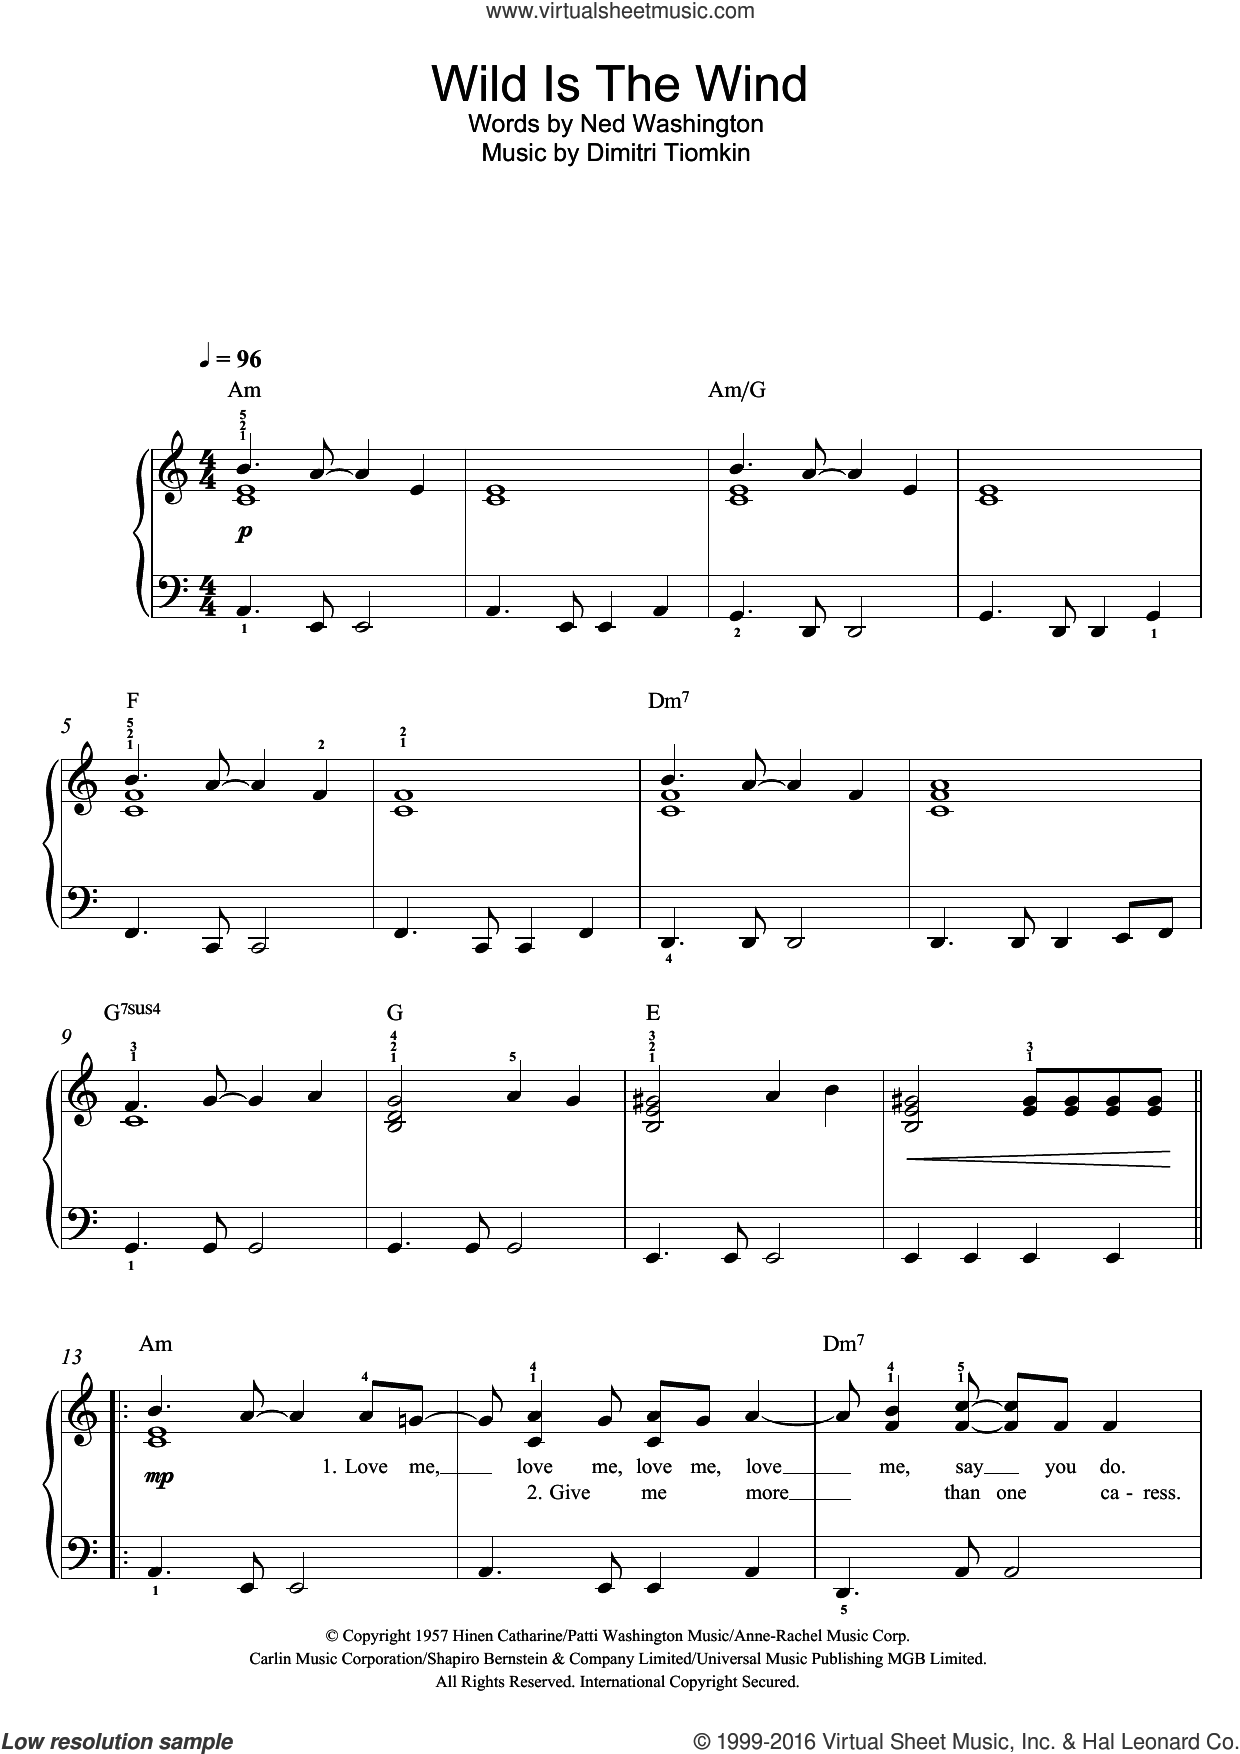 Wild Is The Wind sheet music for voice, piano or guitar by Ned Washington